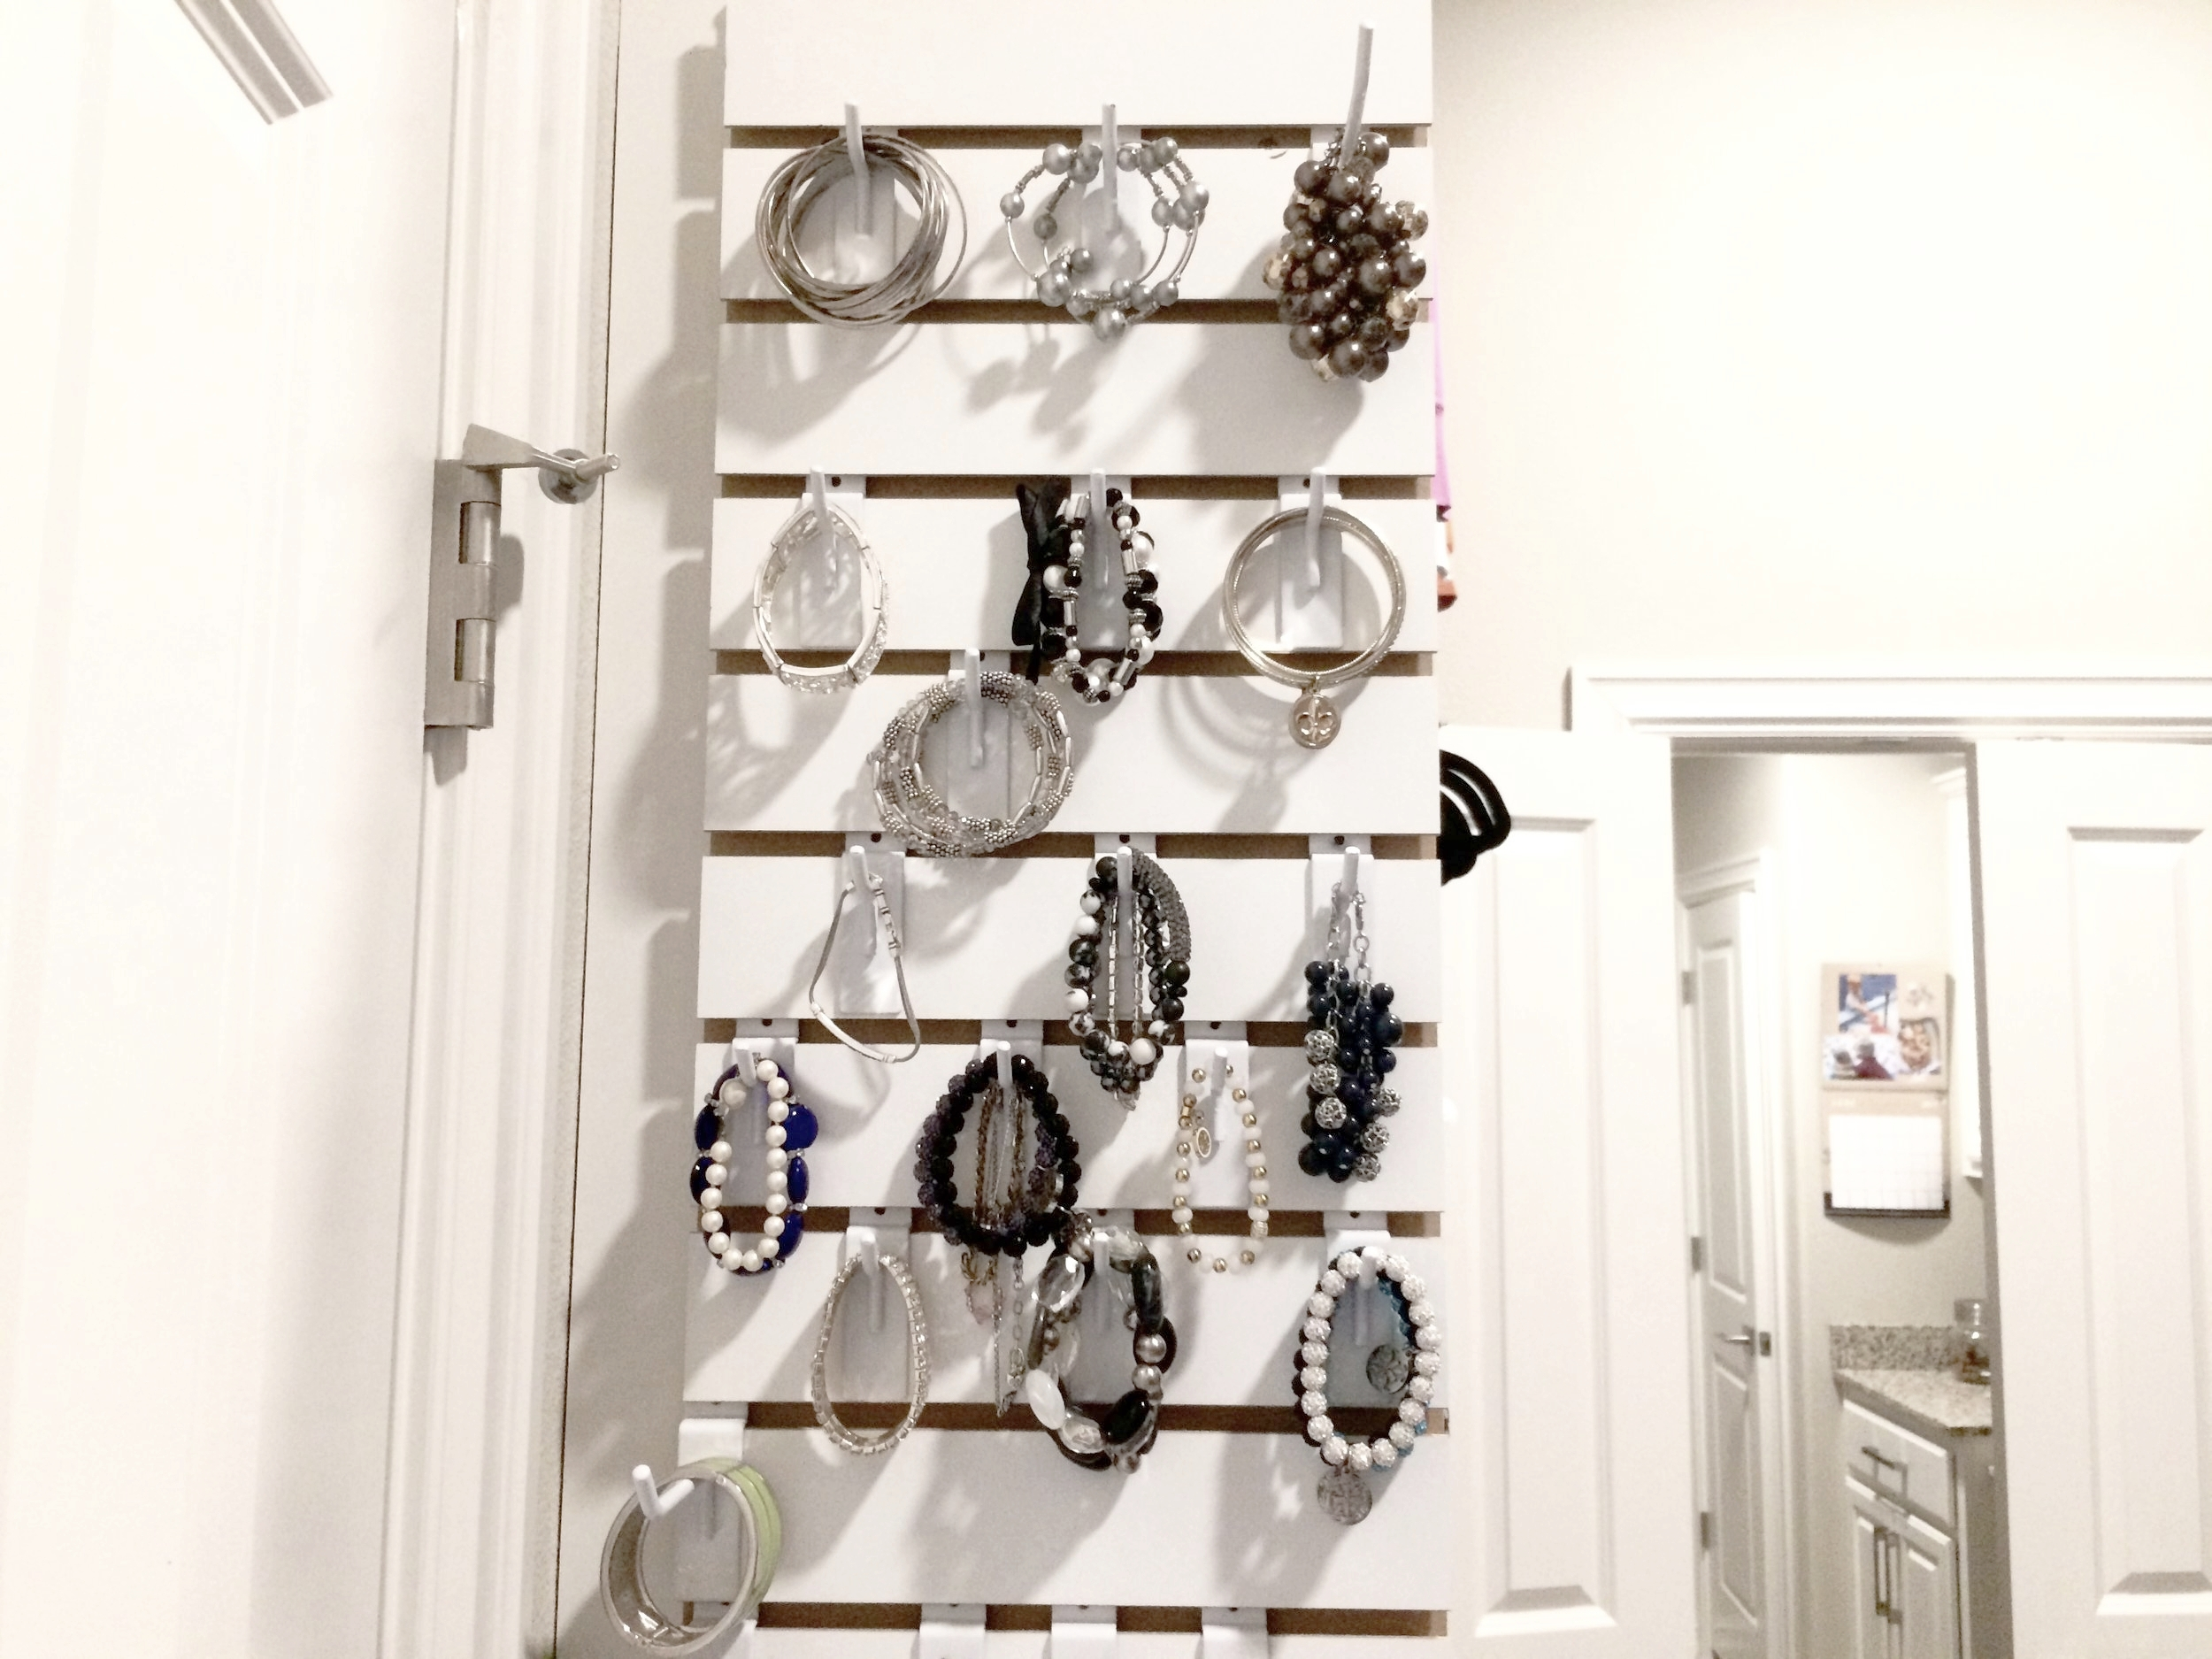 The jewelry slatwall in my own custom closet fits snugly on the side of my shoe rack.  Call Closets of Tulsa  today for your FREE consultation and 3-D closet design:  918.609.0214